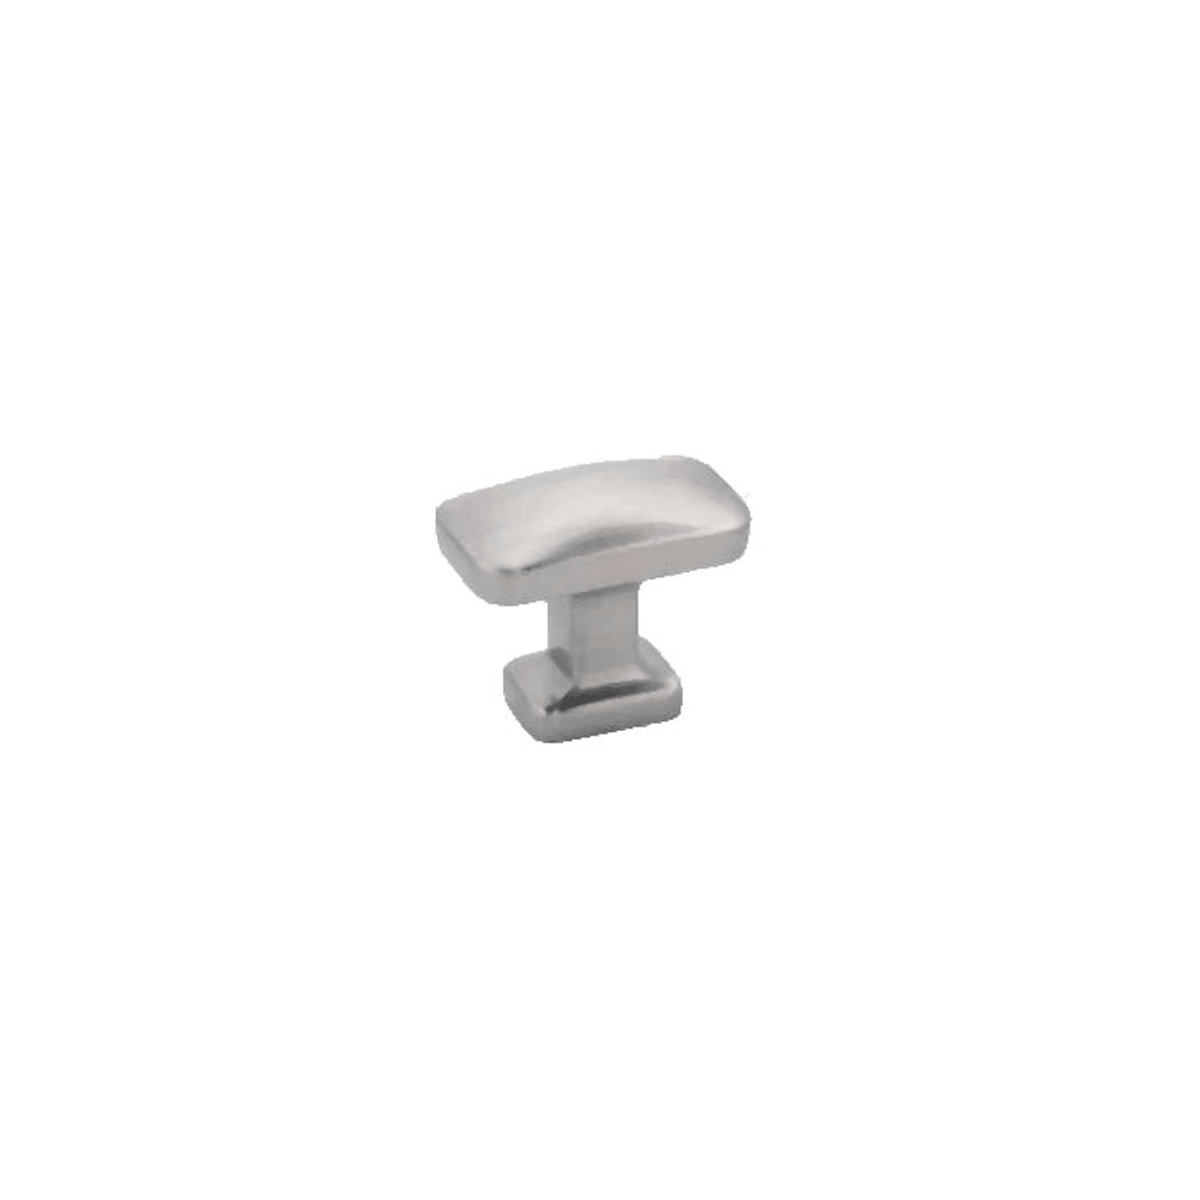 Alno Cloud 1-1/4 Inch Rectangular Cabinet Knob